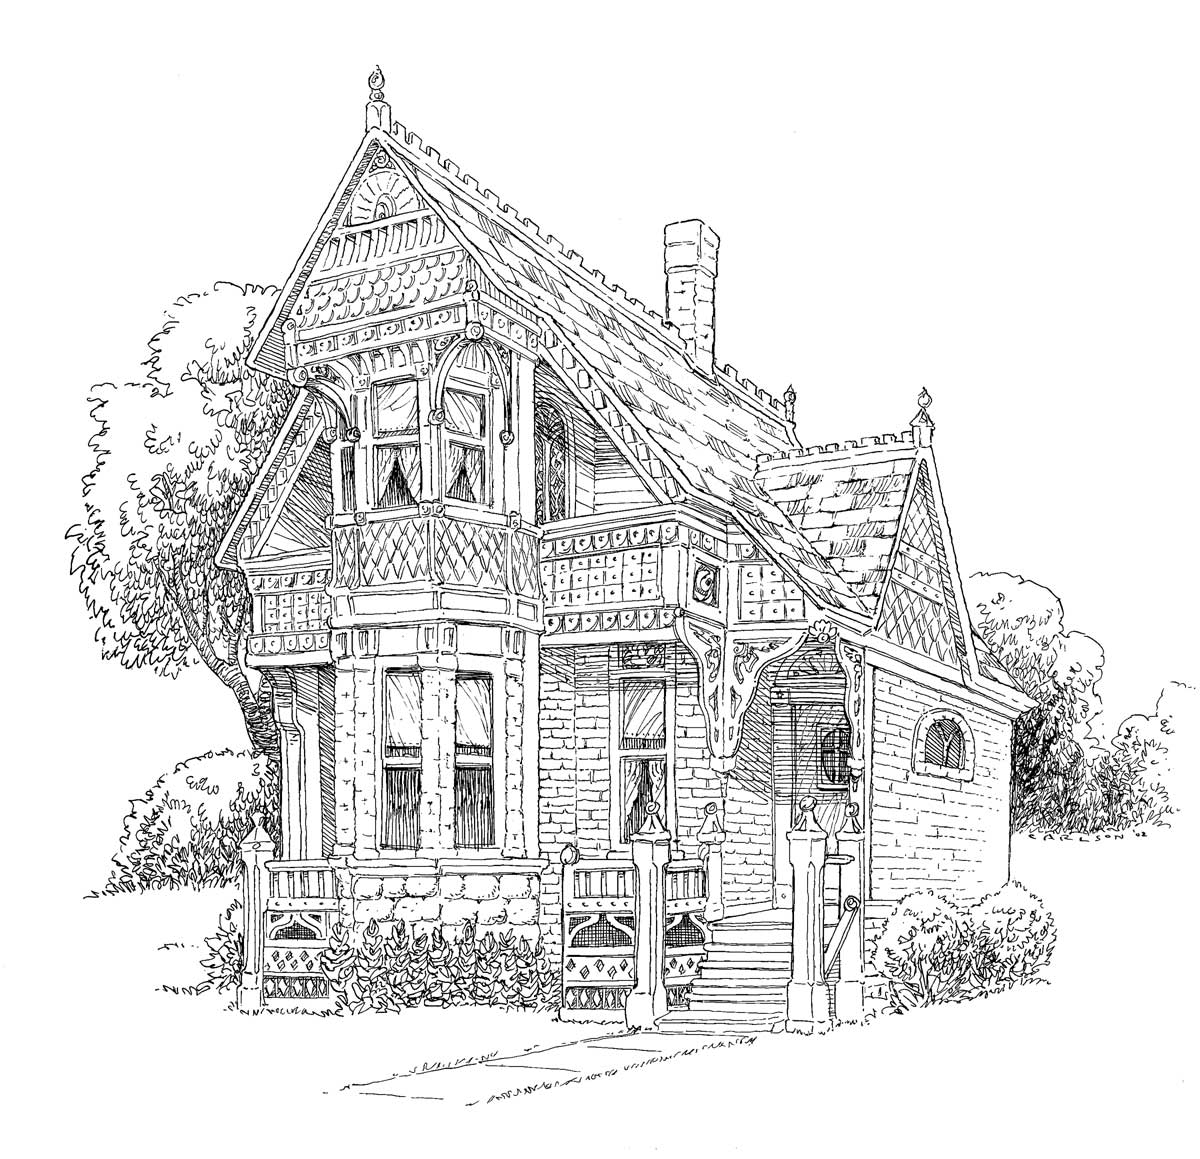 little street cafe scene coloring pages pinterest